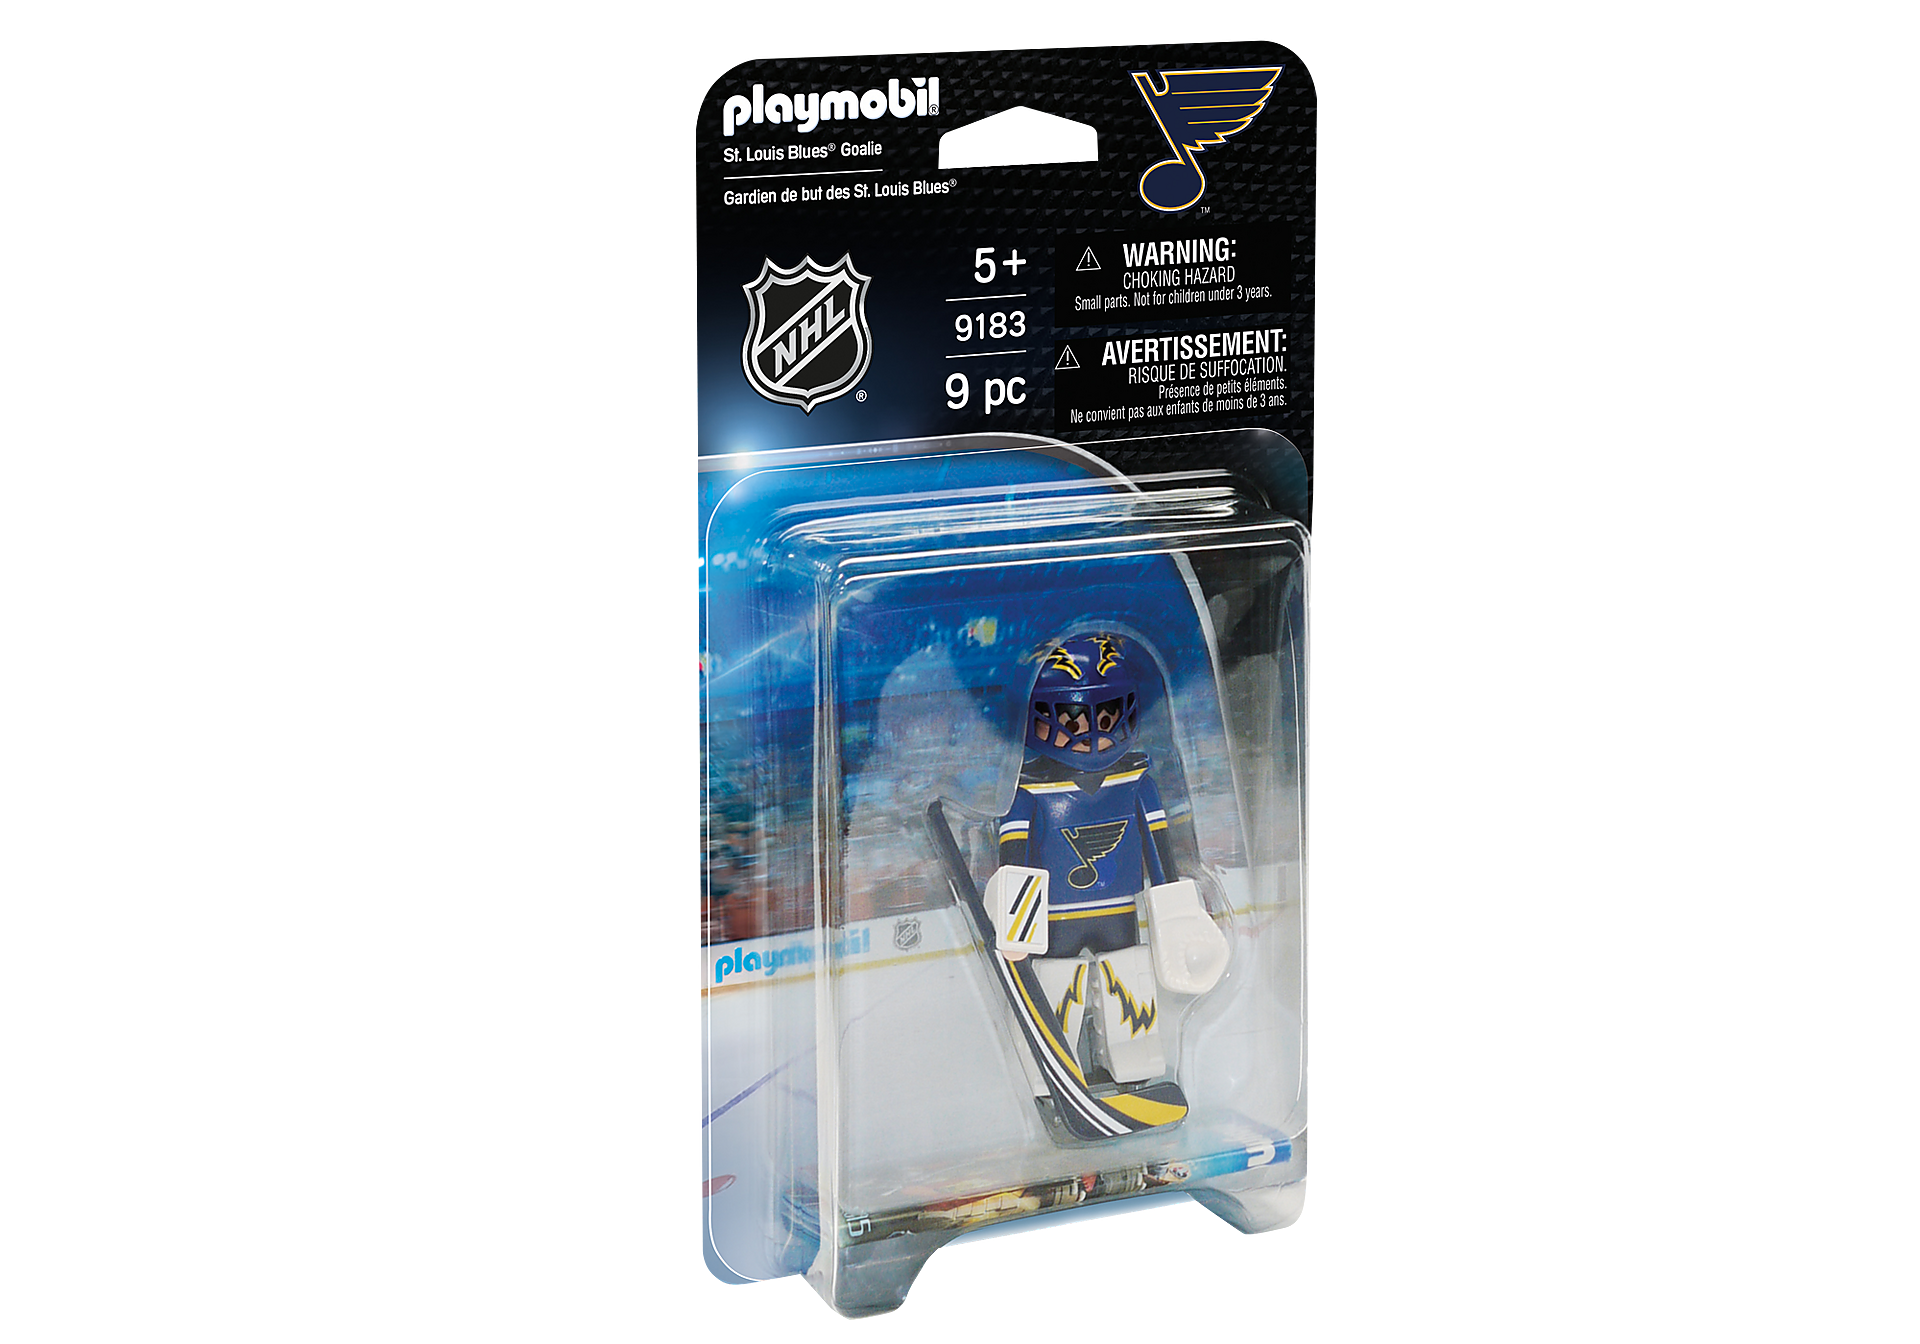 http://media.playmobil.com/i/playmobil/9183_product_box_front/NHL® St. Louis Blues® Goalie